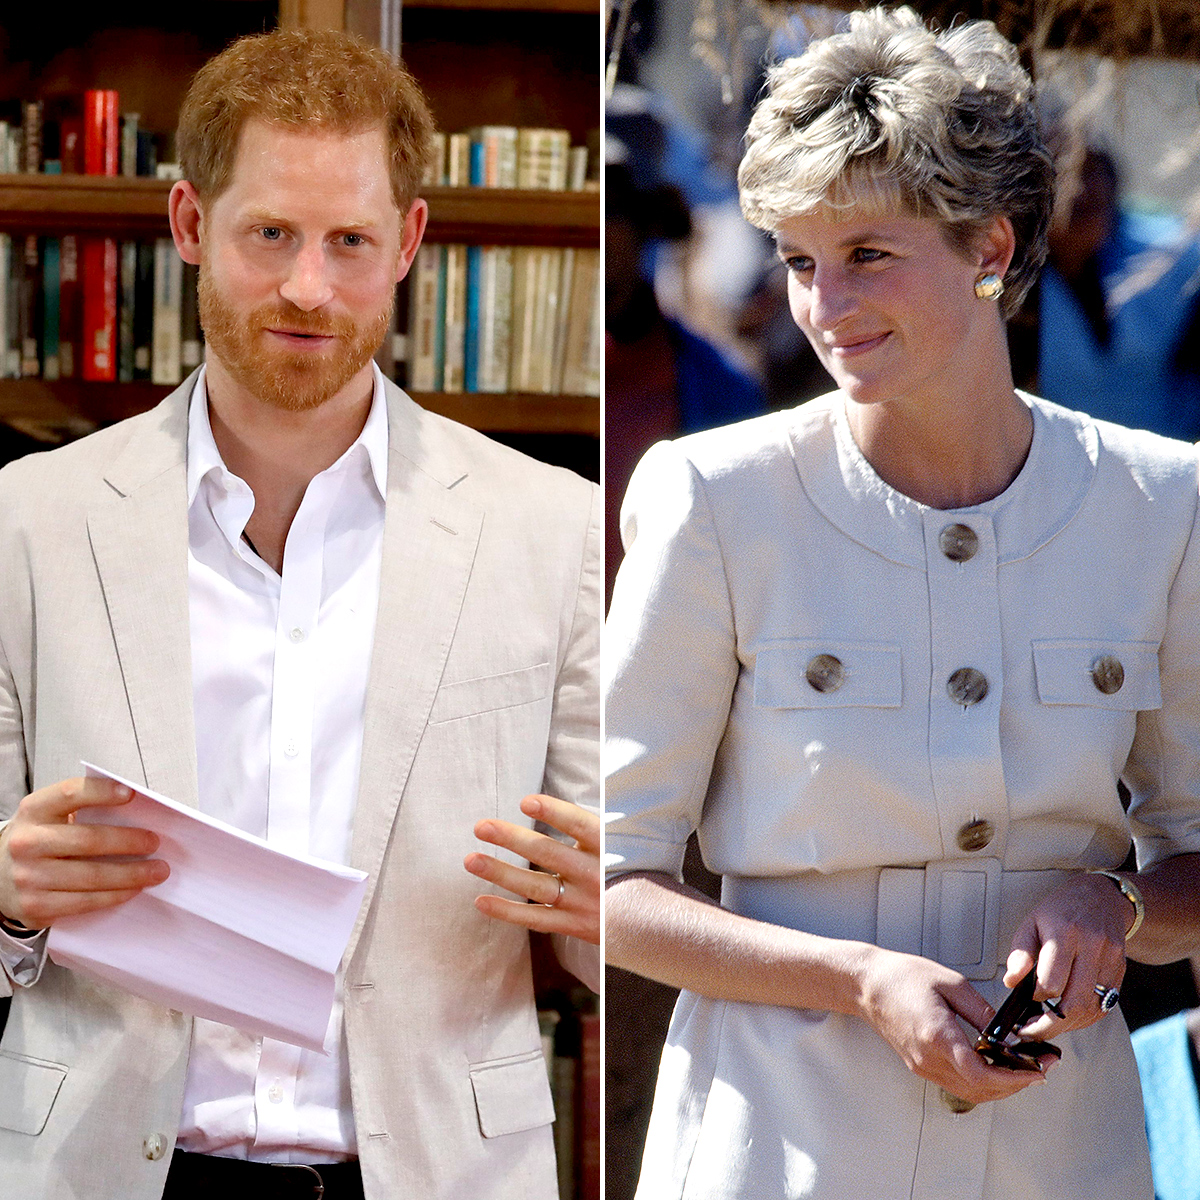 Prince Harry Speaks Out About Racism on Princess Diana's Birthday